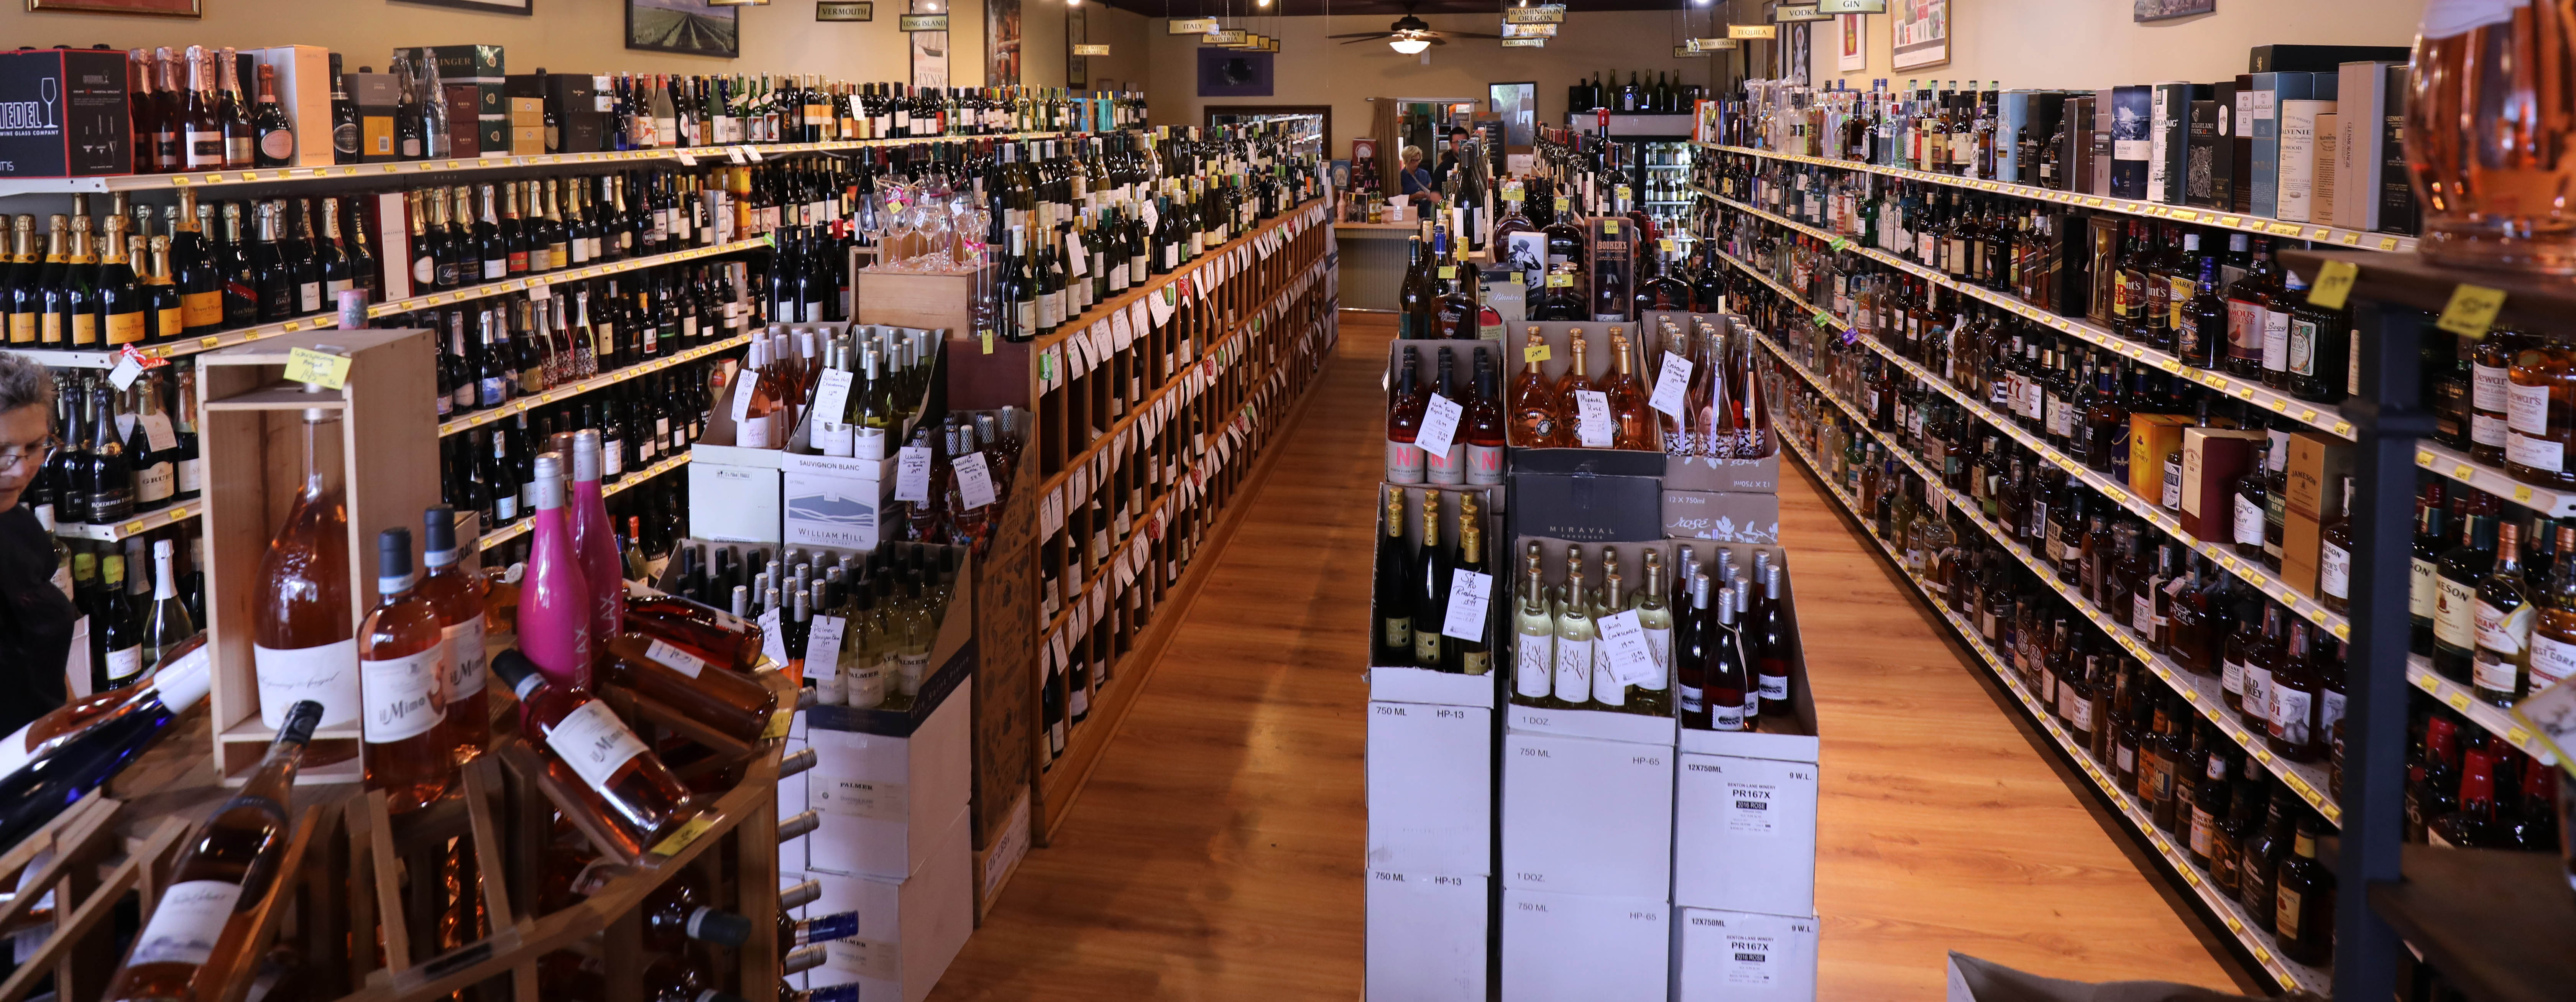 Greenport Wines and Spirits-10